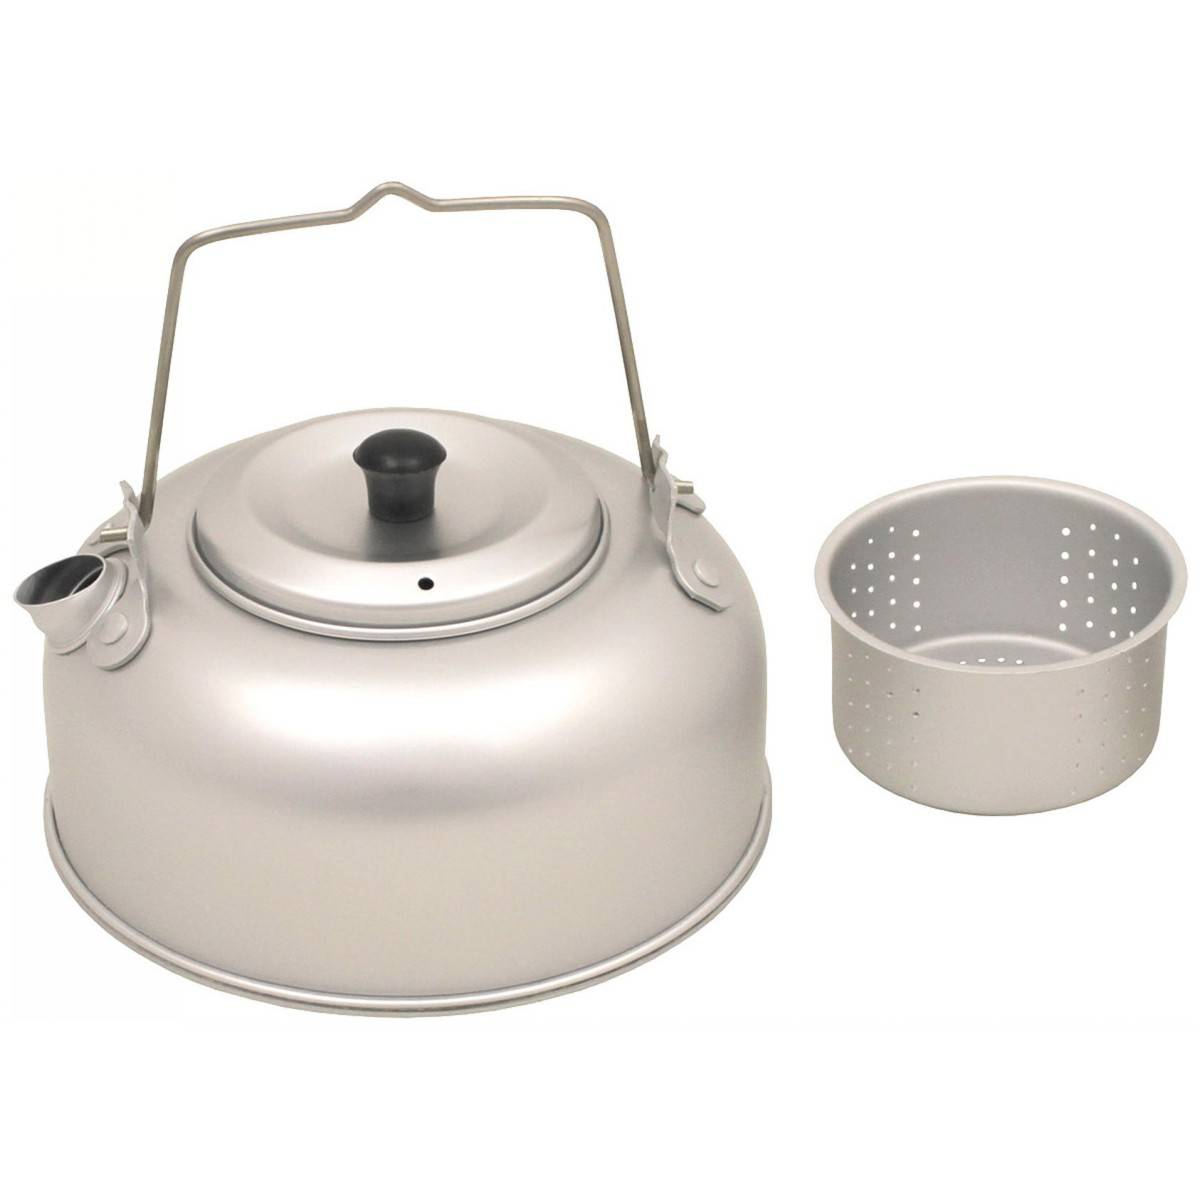 Tea Kettle With Strainer Kettle With Tea Strainer Aluminum 95 L 1 Qt